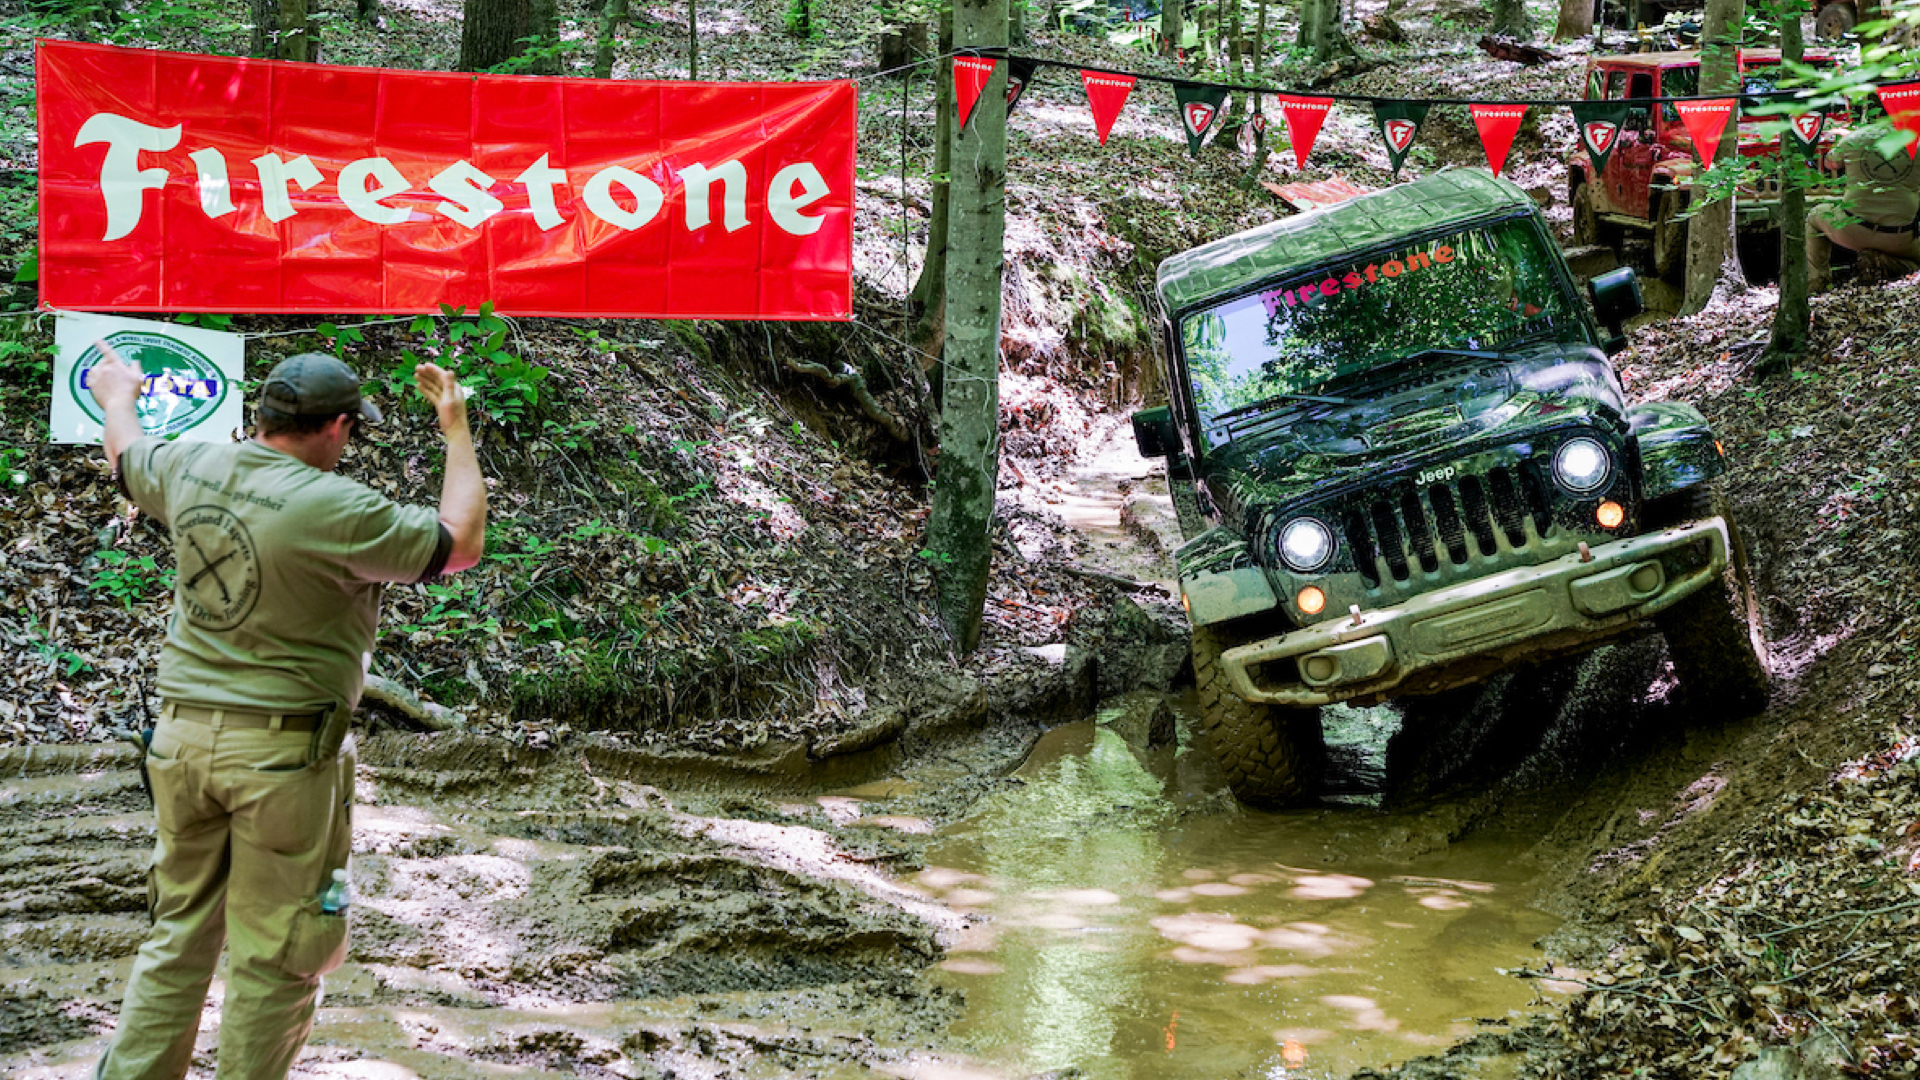 Firestone Launches Aggressive Off-Road Tire for 4X4s, Pickup Trucks and SUVs